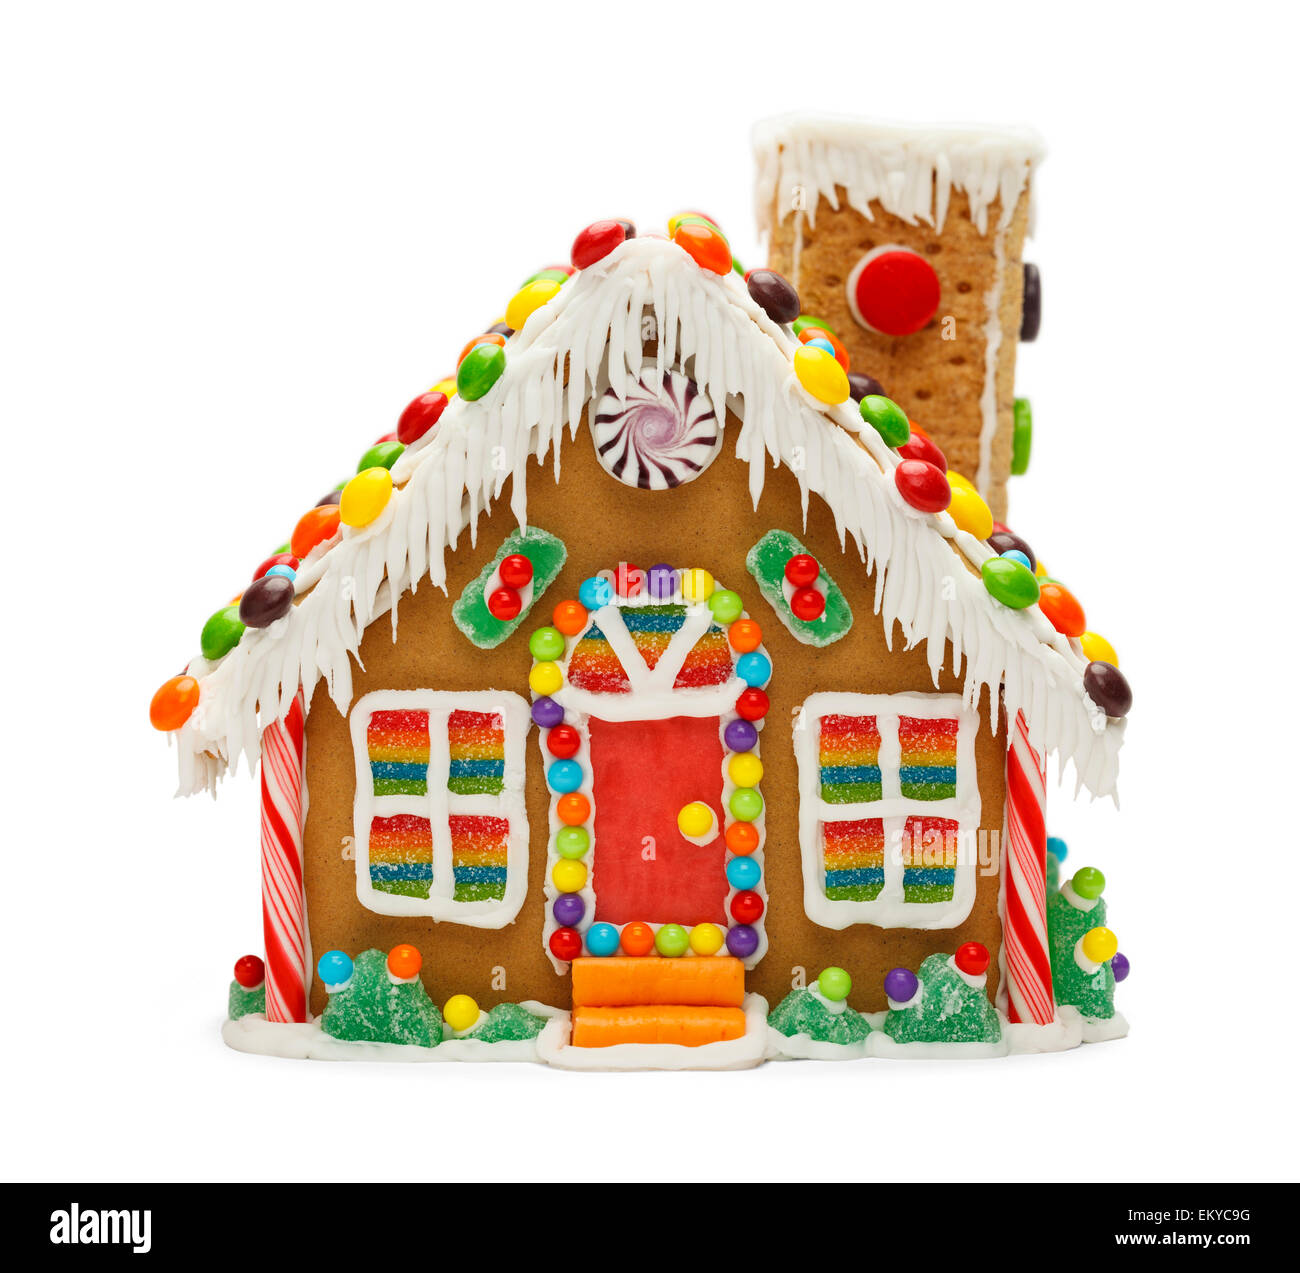 Christmas Gingerbread House Background.Christmas Gingerbread Cookie House With Candy Isolated On